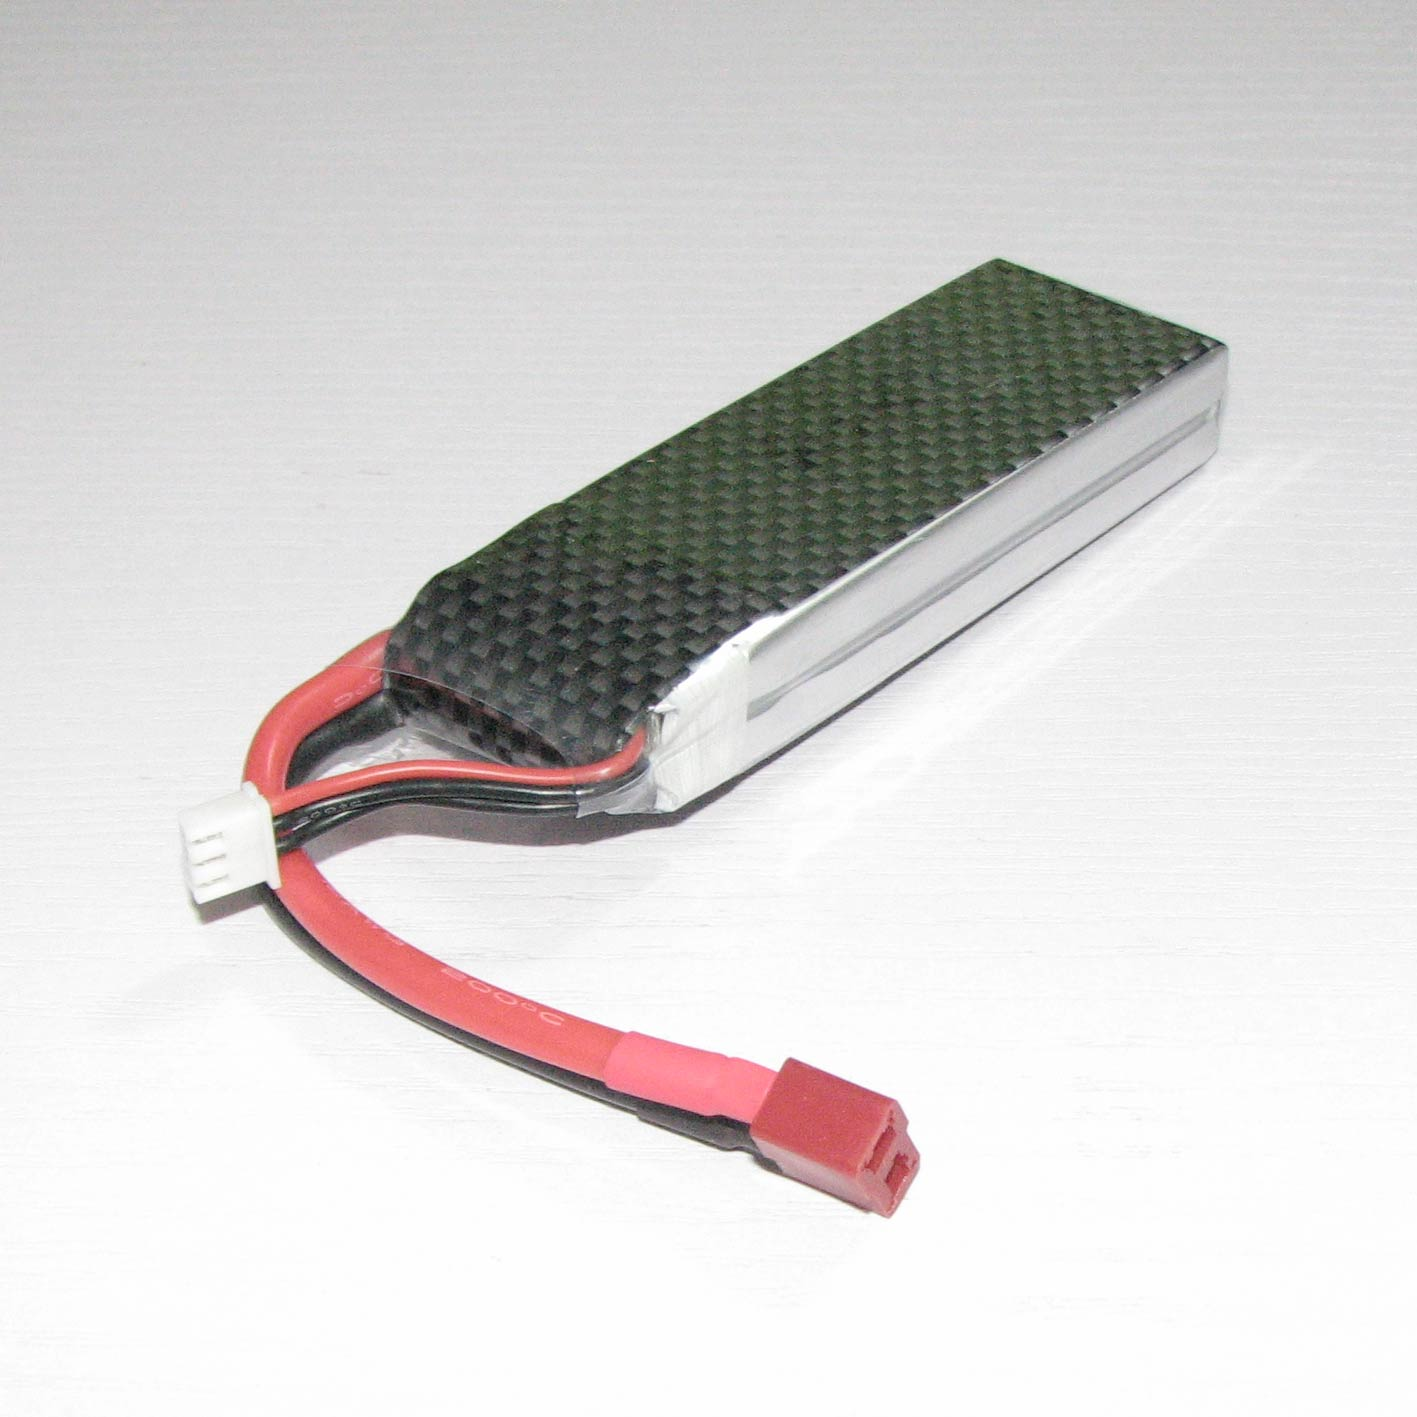 65C High Rate LiPO battery 2200mAh 2600mAh <font><b>3300mAh</b></font> 4200mAh 5200mAh 2S/3S/<font><b>4S</b></font>/5S/6S max charge rate 10C RC model Lipoly power pack image